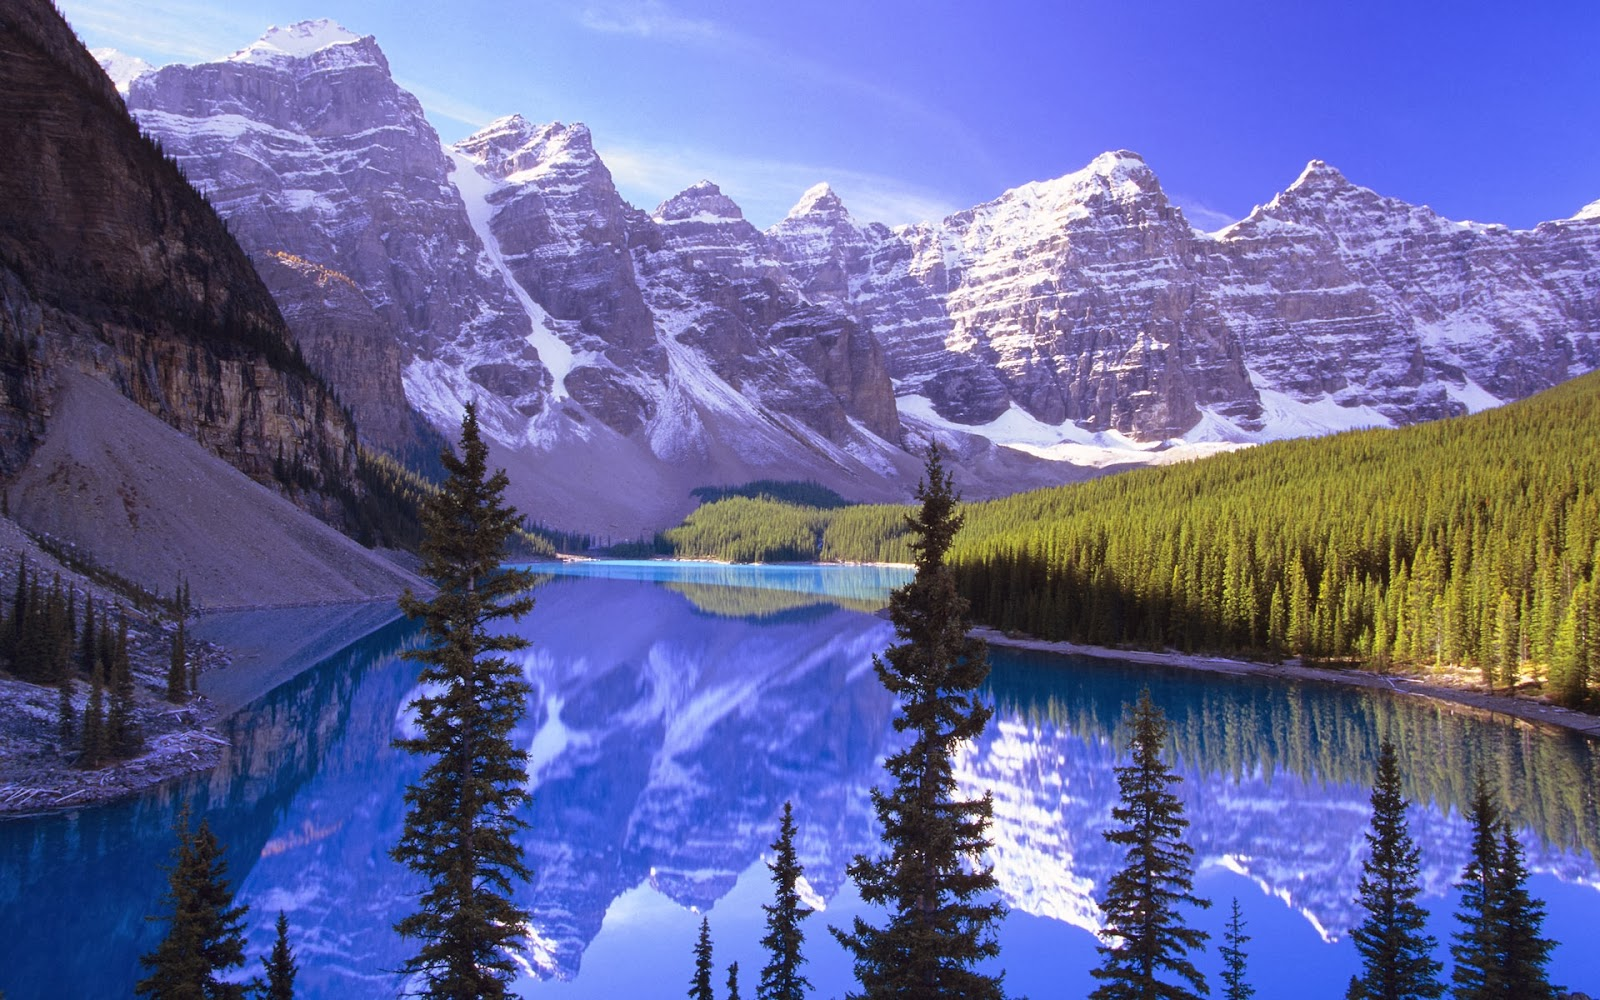 Ice Snowy Mountains Lake Nature Full HD Desktop Backgrounds Images Wallpapers Free